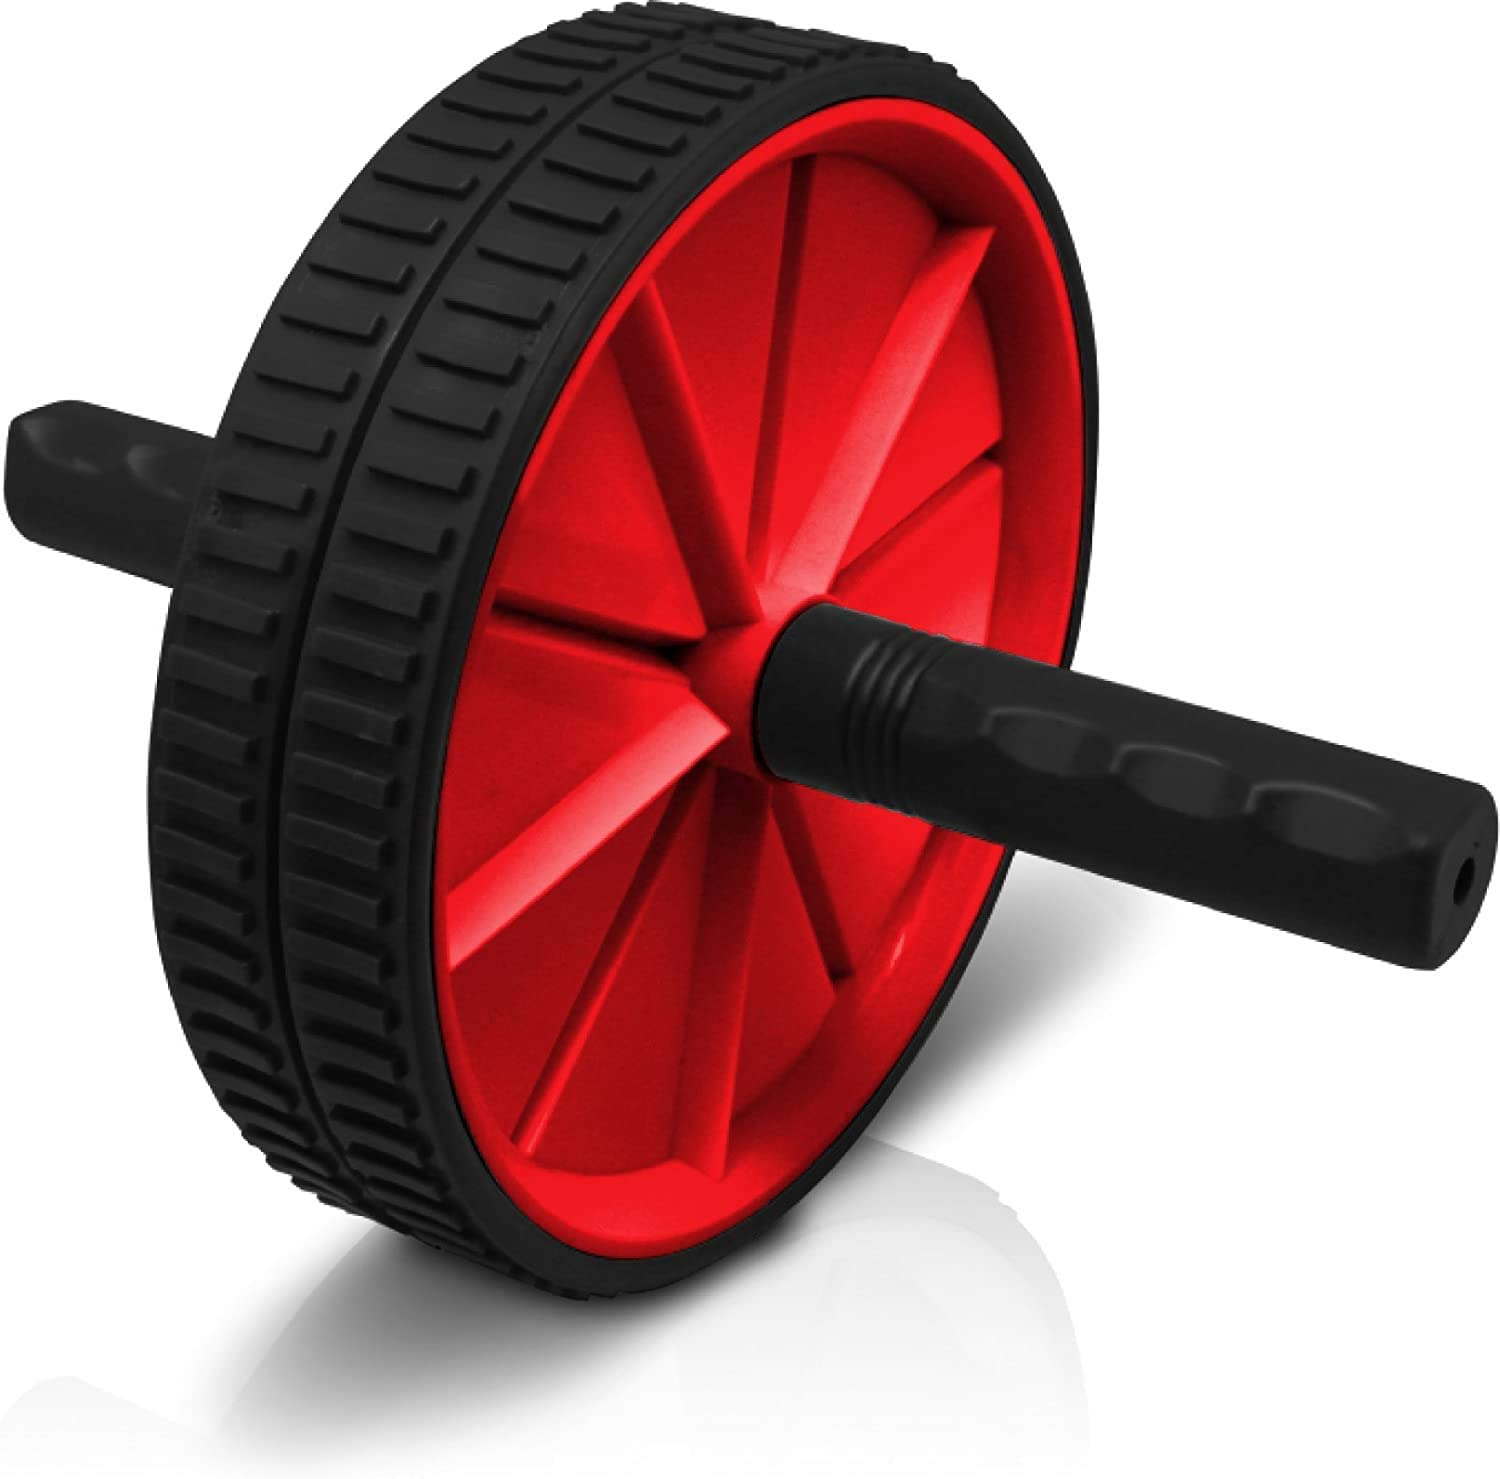 Valk Lightweight Gym Portable Abdominal Roller Wheel for Core Strength Exercise red